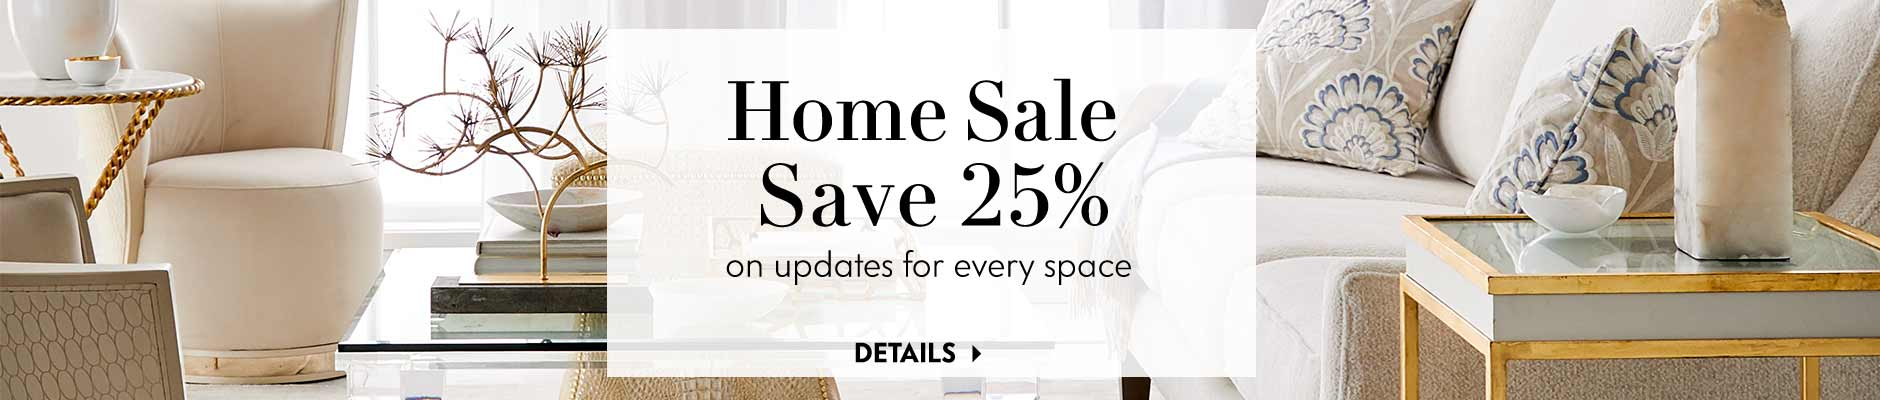 Home Sale - Save 25% on updates for every space